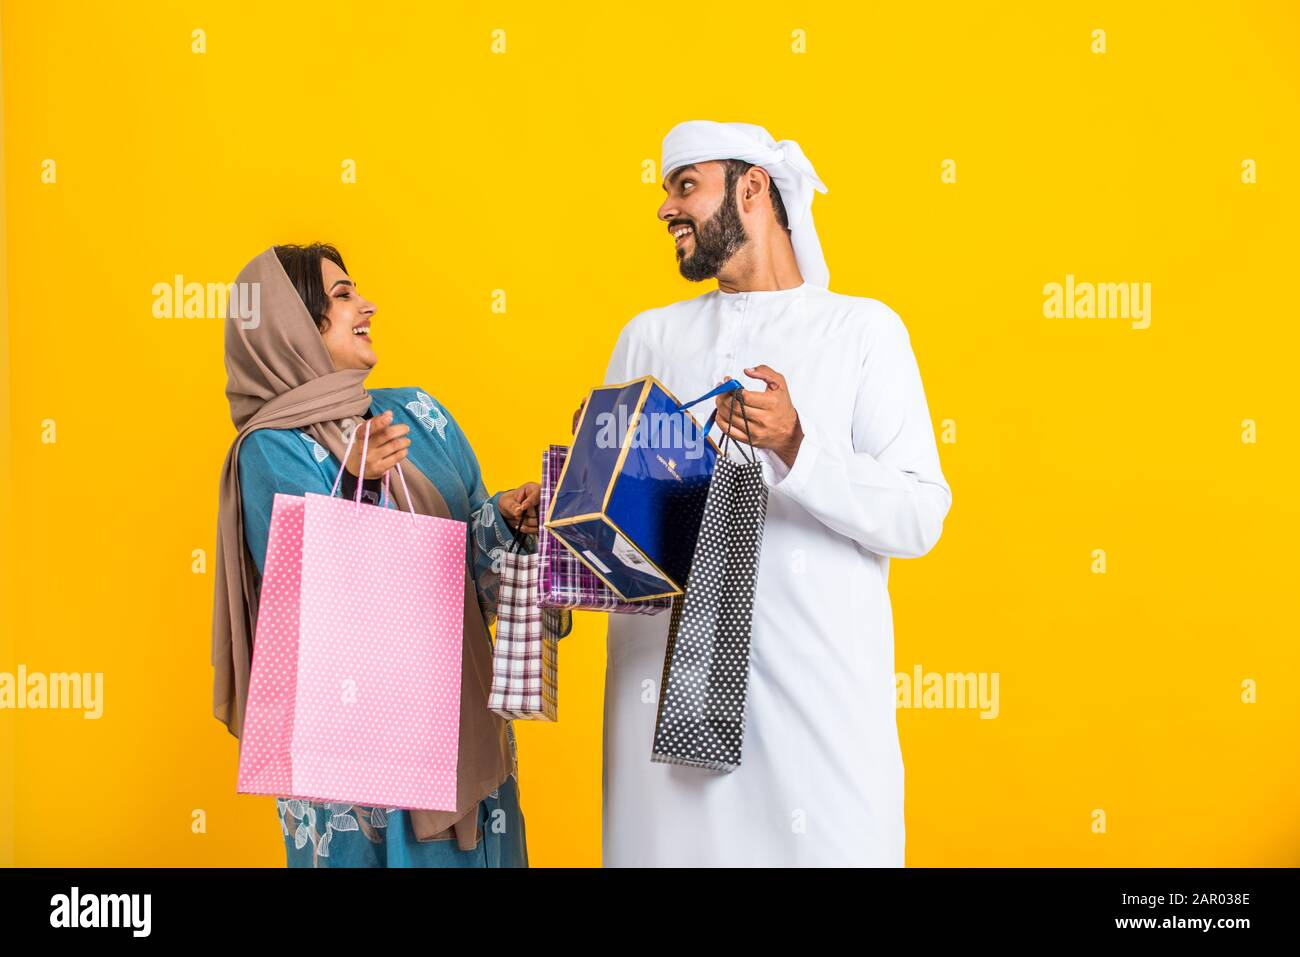 Middle Eastern Family With Traditional Emirates Dresses Posing In A Photographic Studio Concepts About Lifestyle Happiness And Family Relationship Stock Photo Alamy